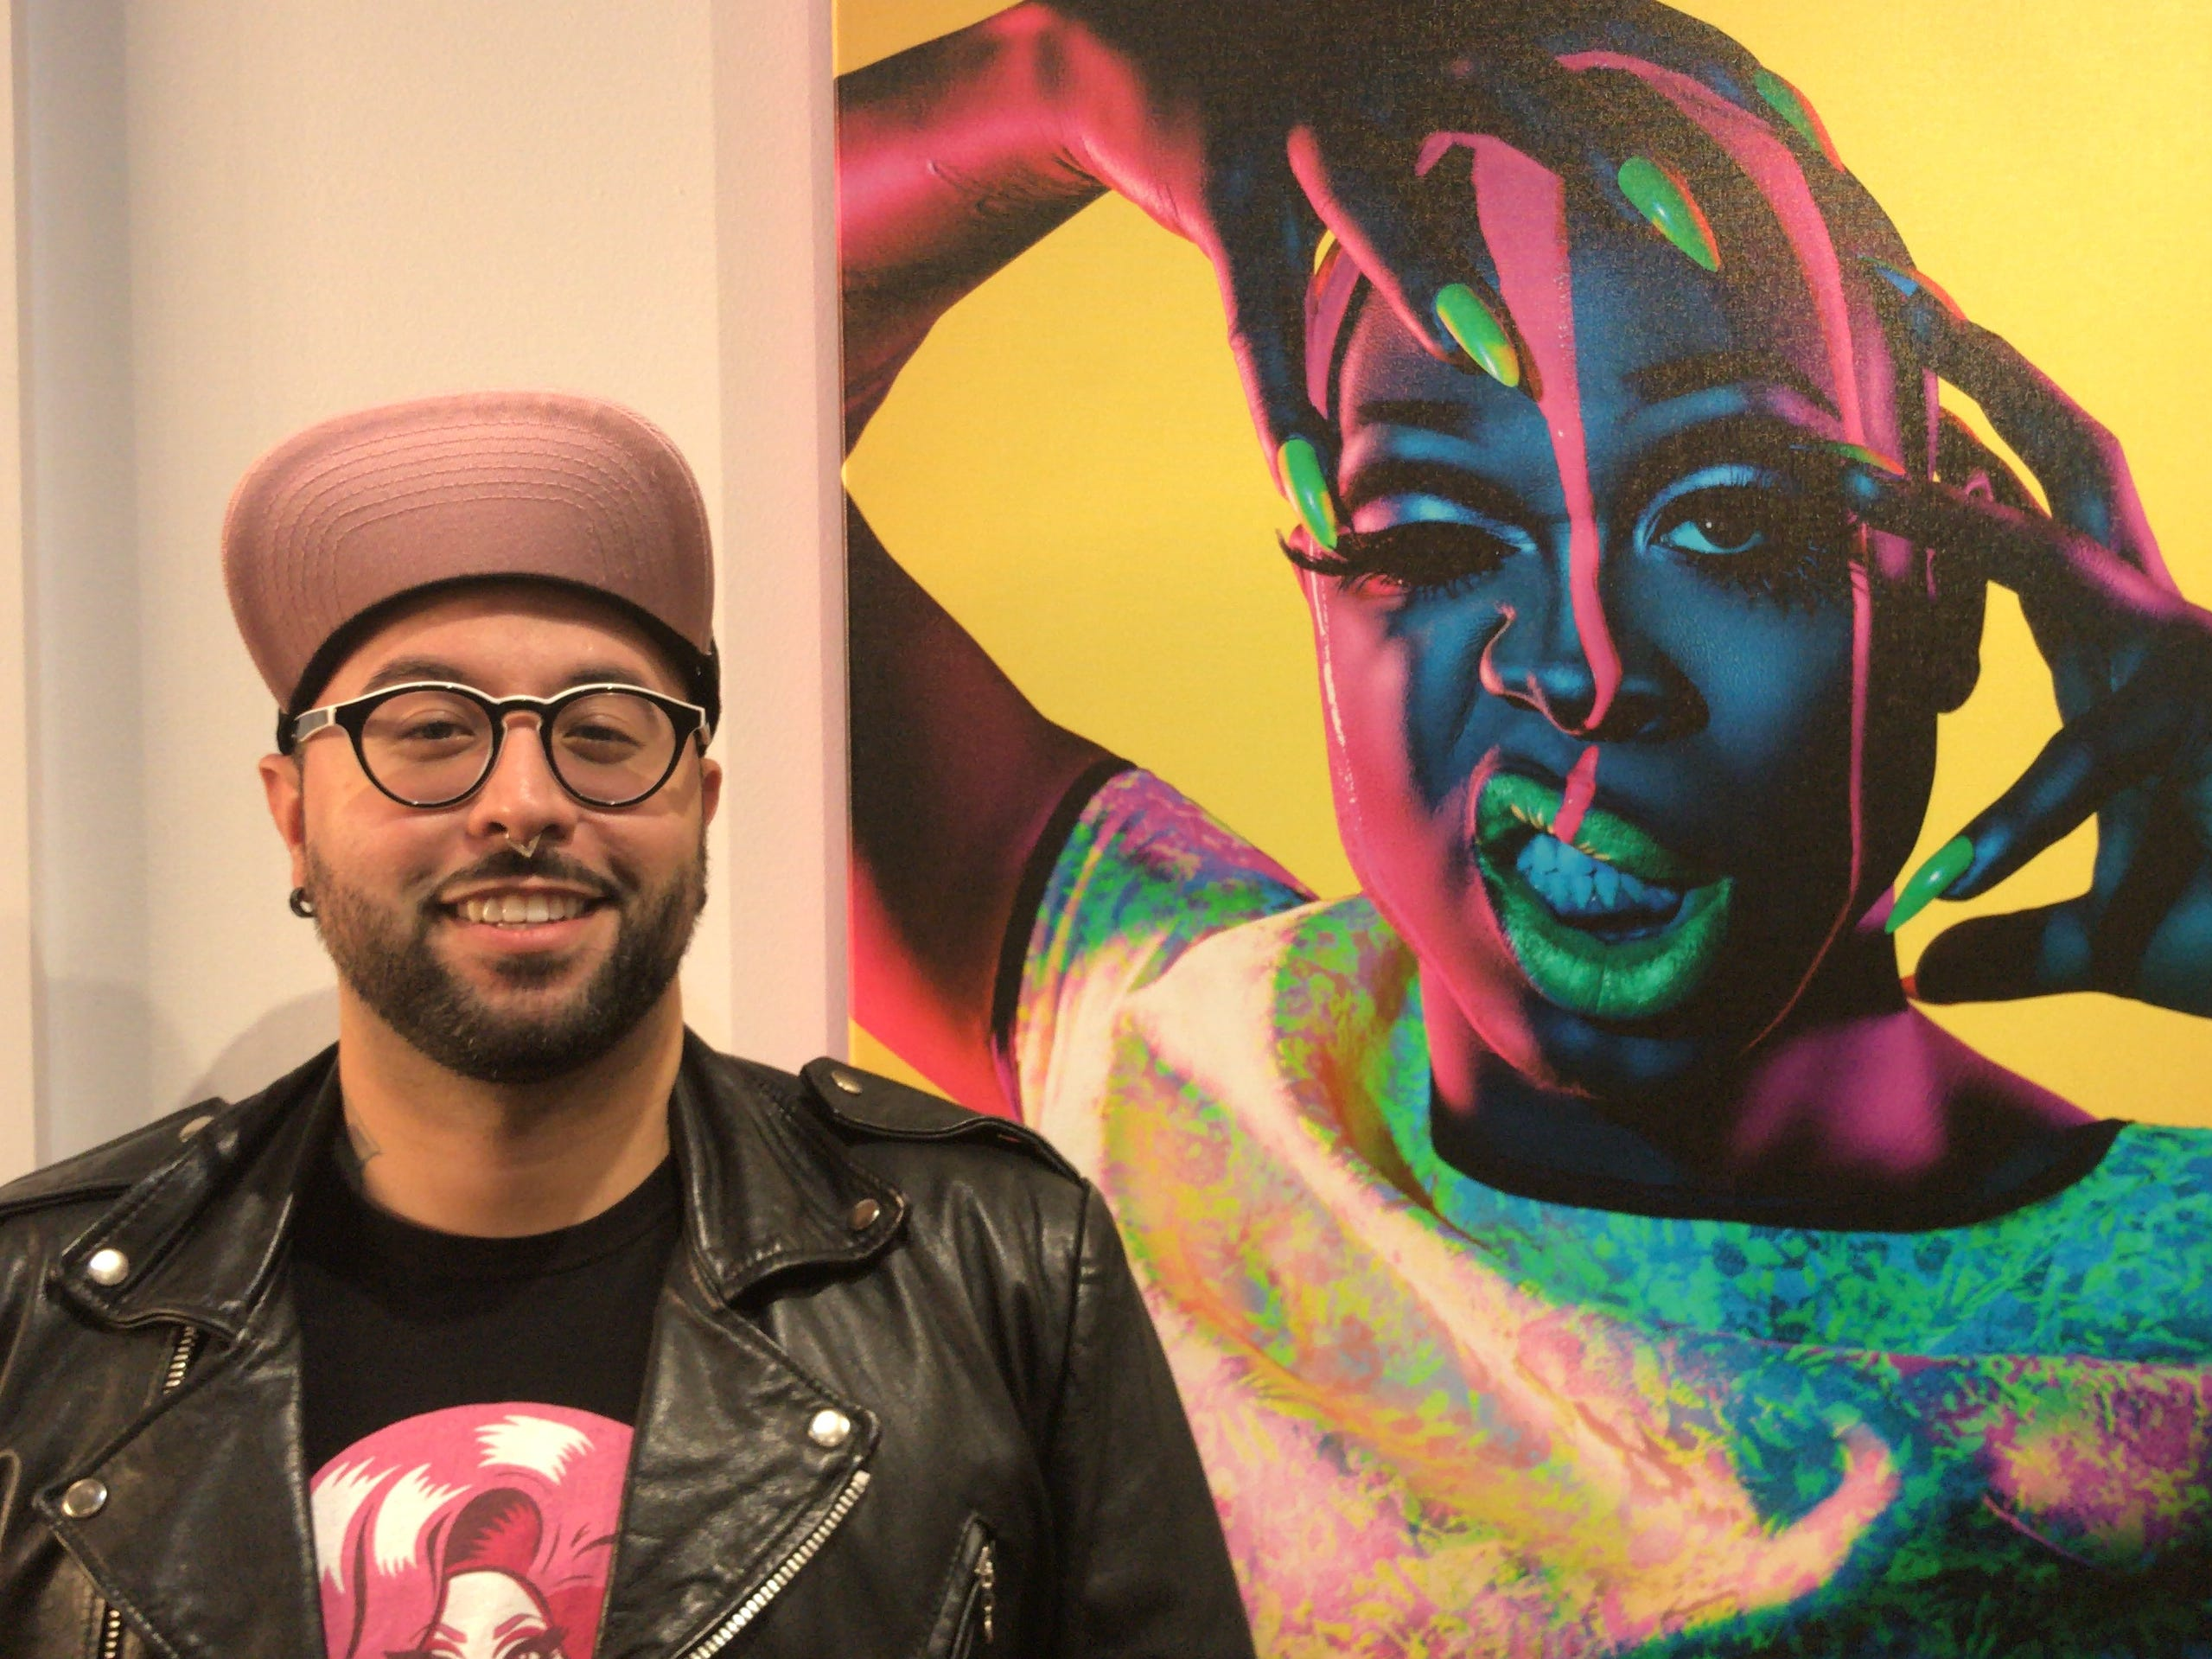 The work of artist David Ayllon is on display and for sale at Illustrated Beauty in downtown Somerville.